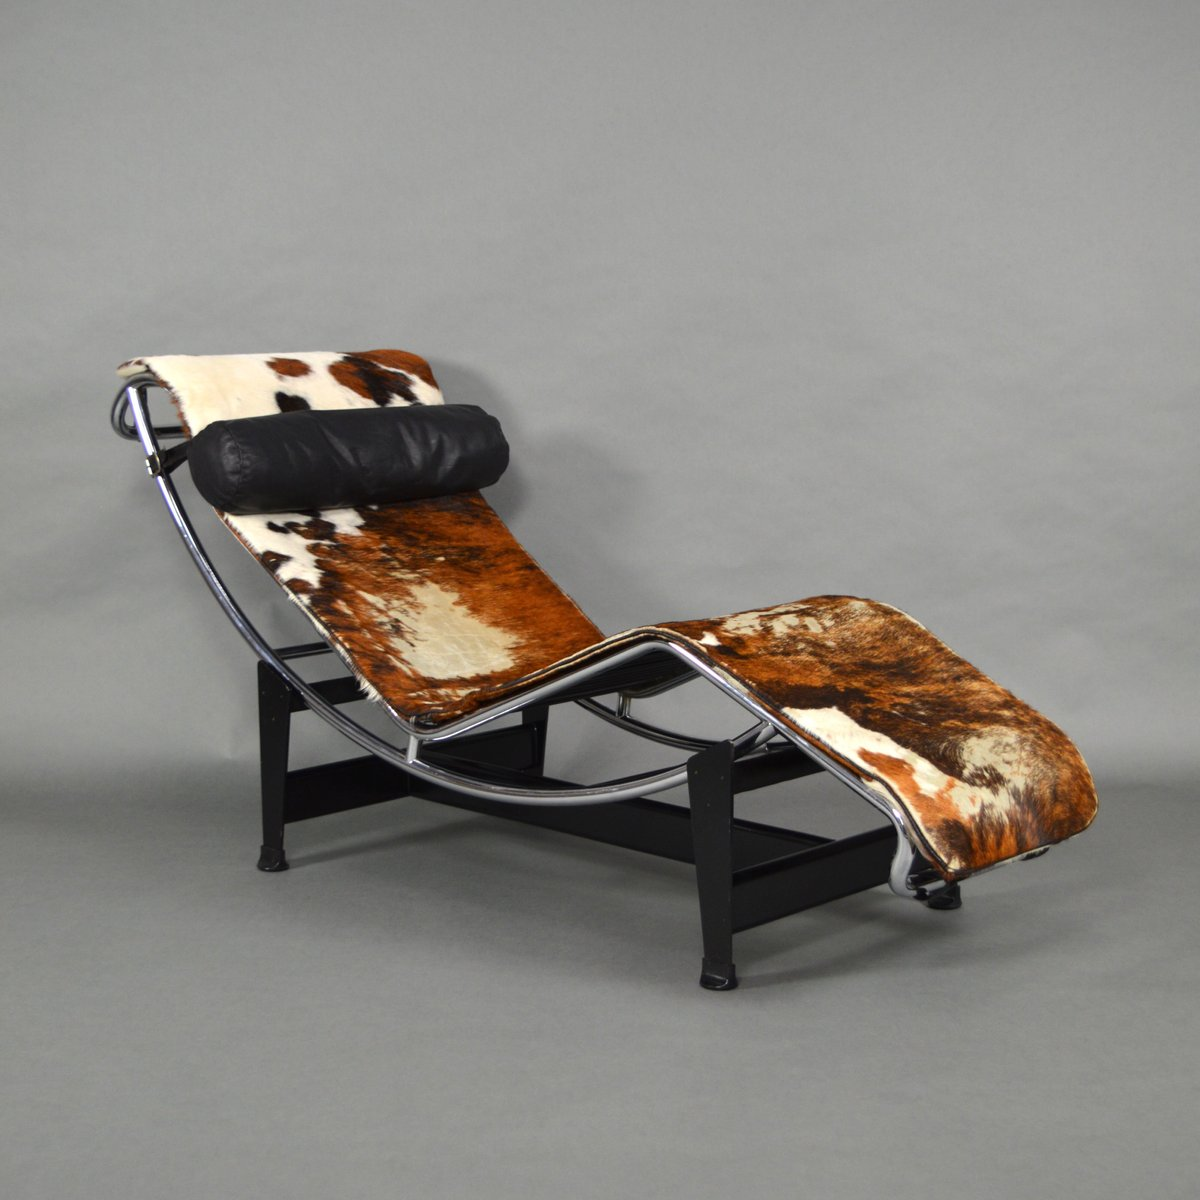 Merveilleux LC4 Chaise Lounge By Le Corbusier For Cassina, 1960s